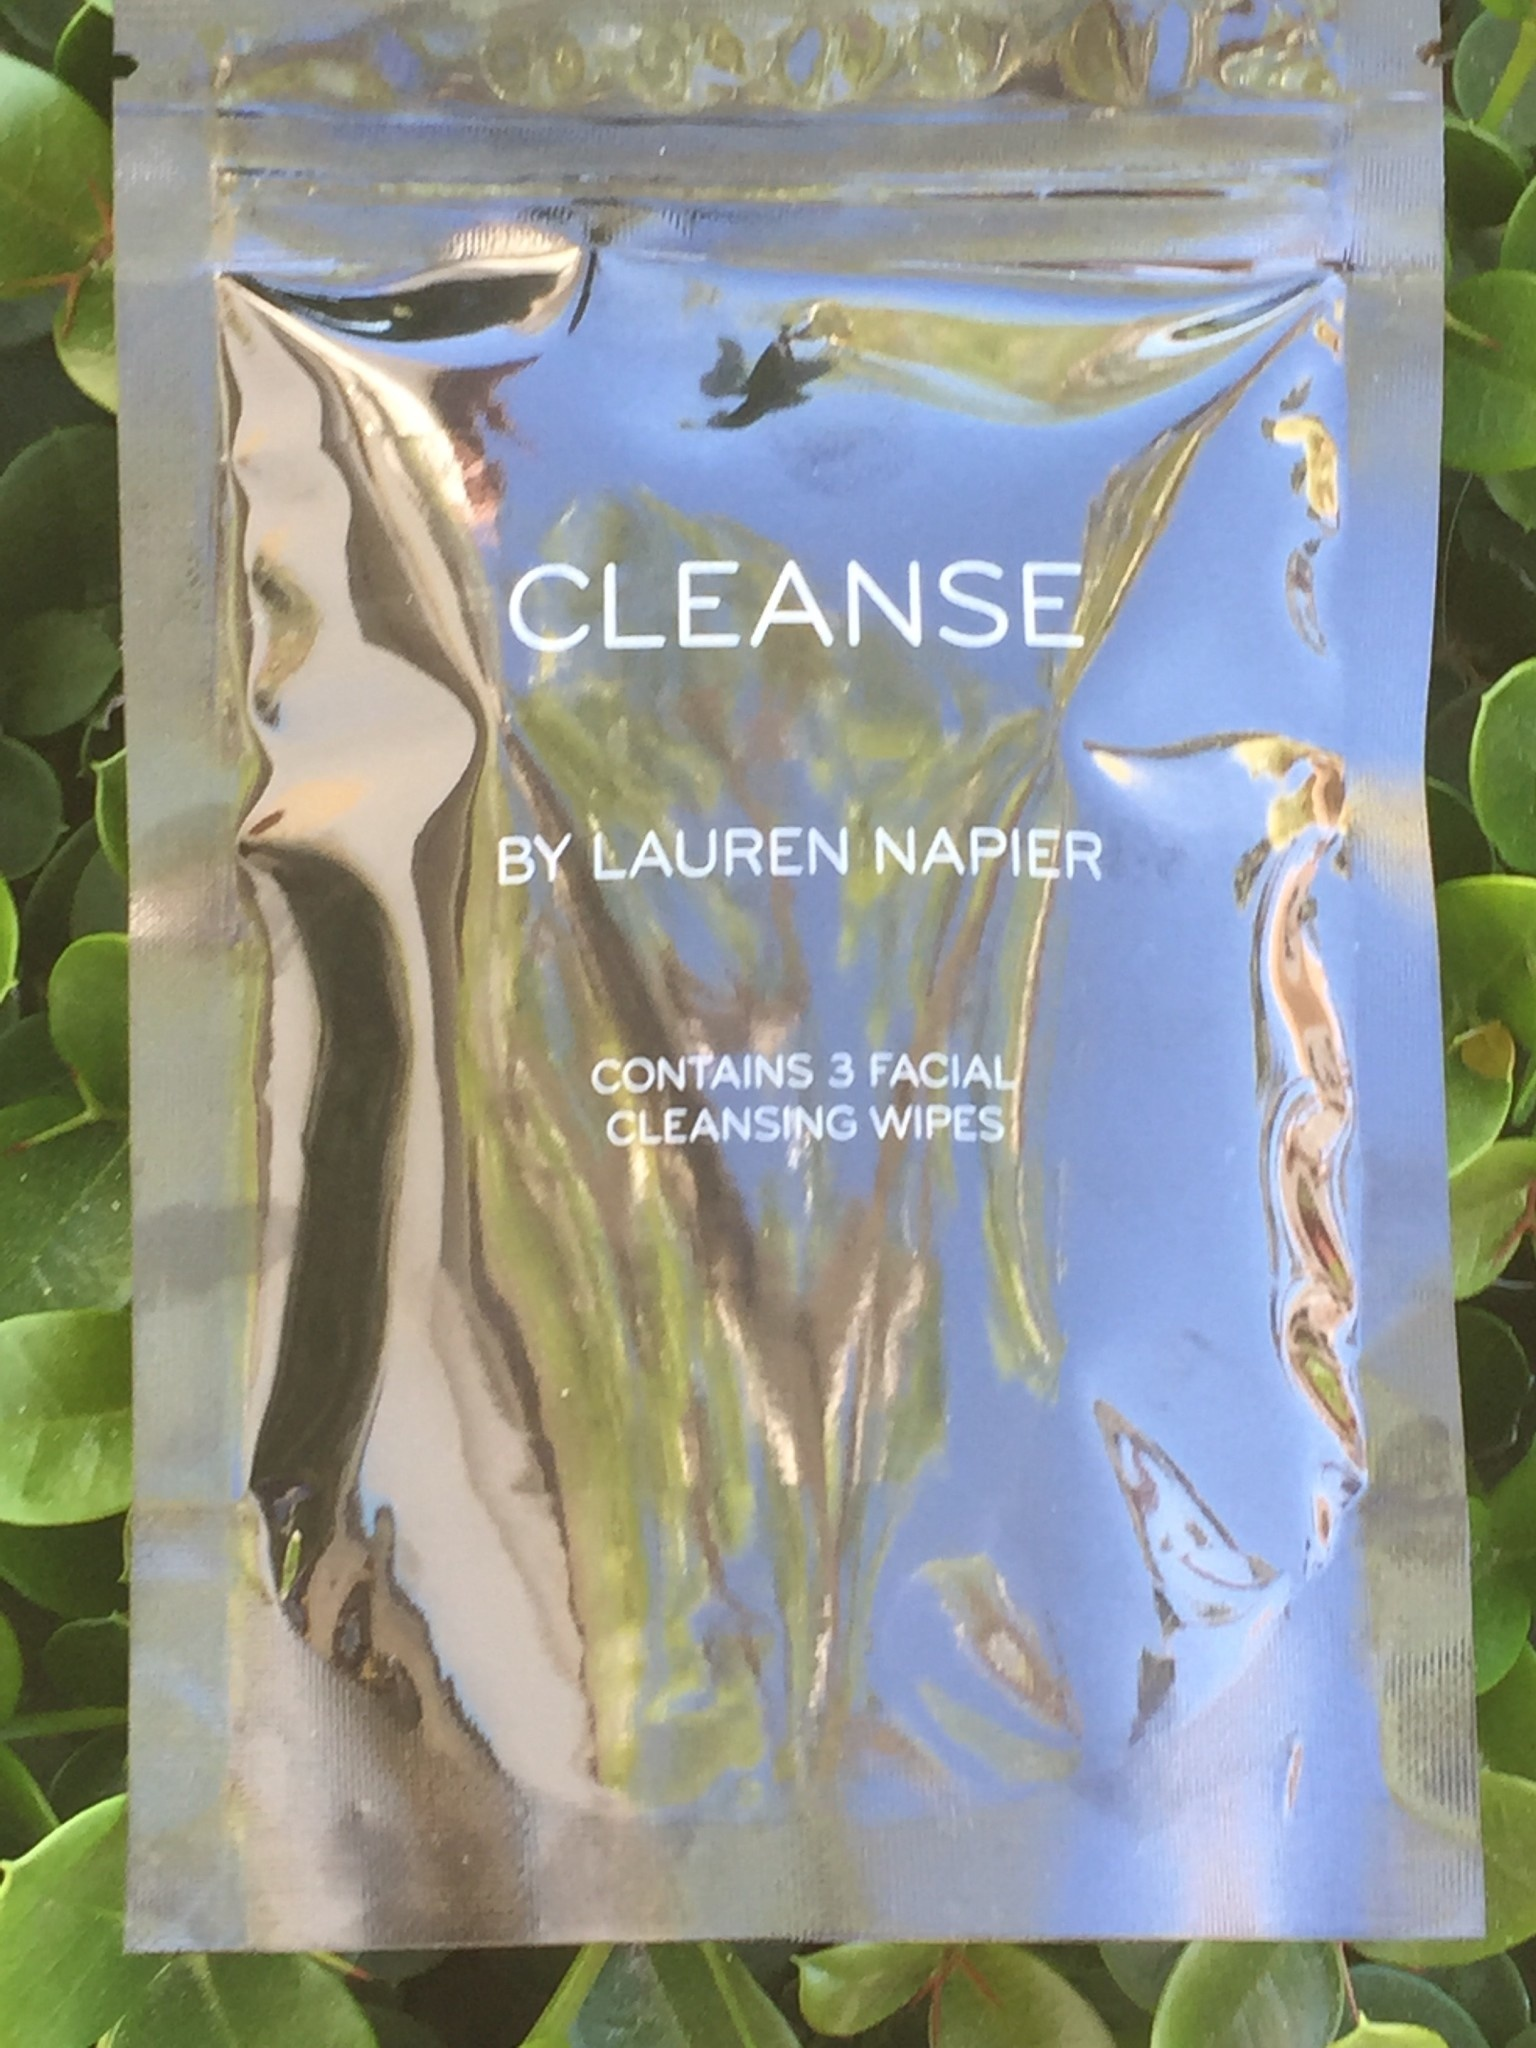 Lauren Napier Cleanse by Lauren Napier 3 count